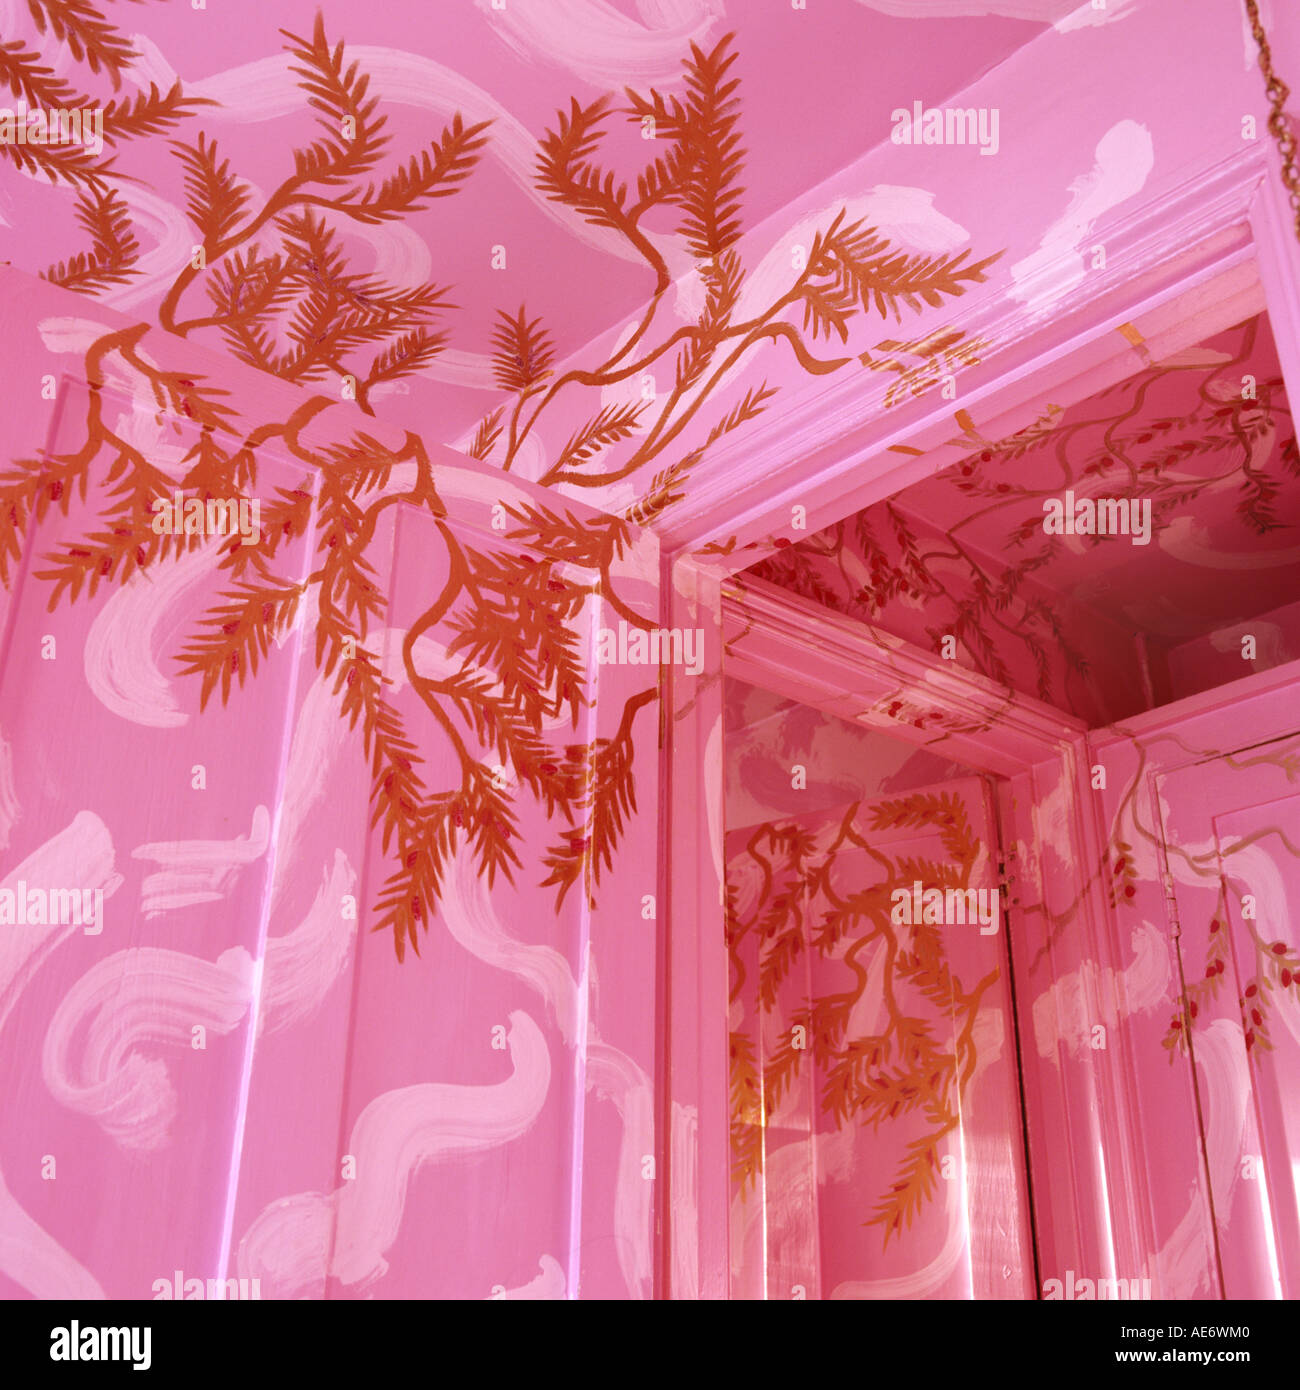 pink and gold hand-painted walls and ceiling by artist Carolinda Tolstoy Stock Photo